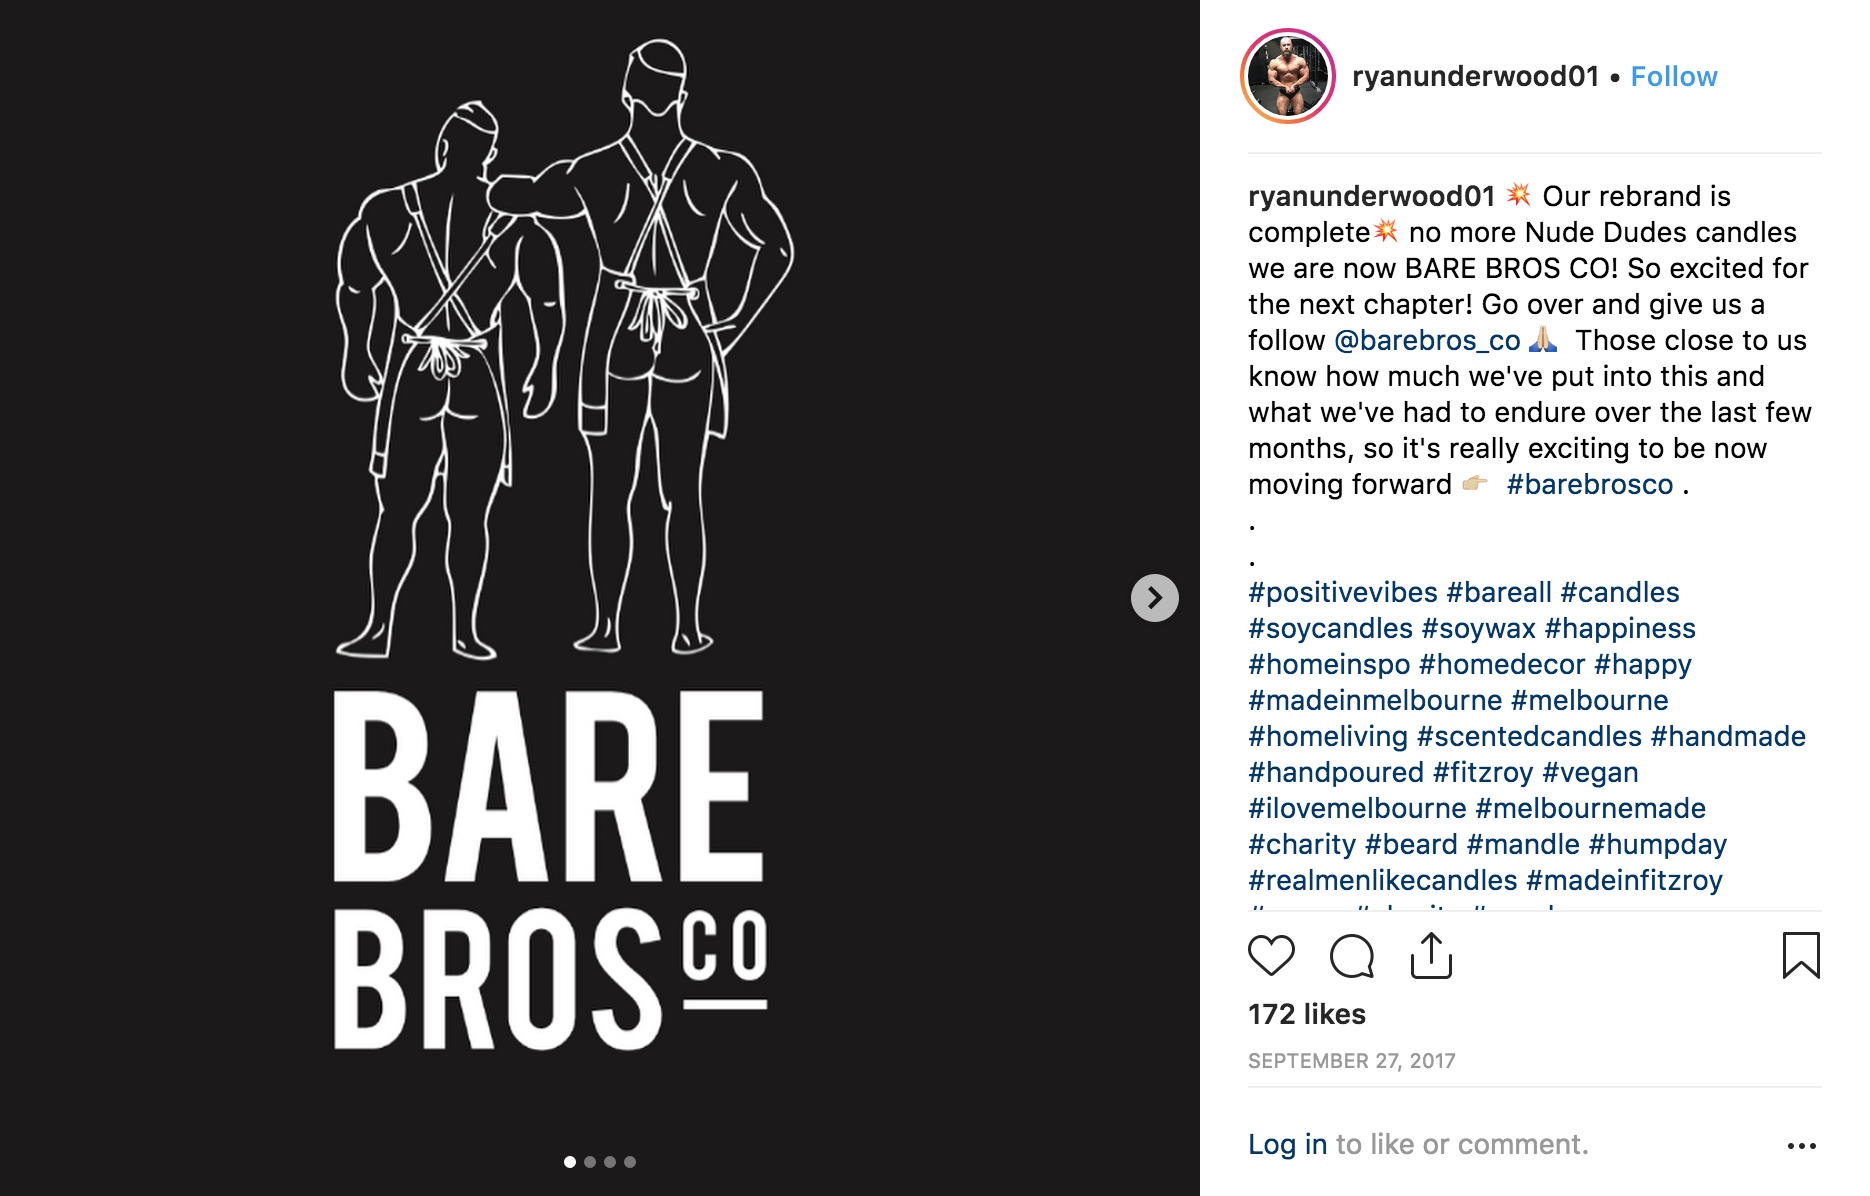 Bare Bros Co.png